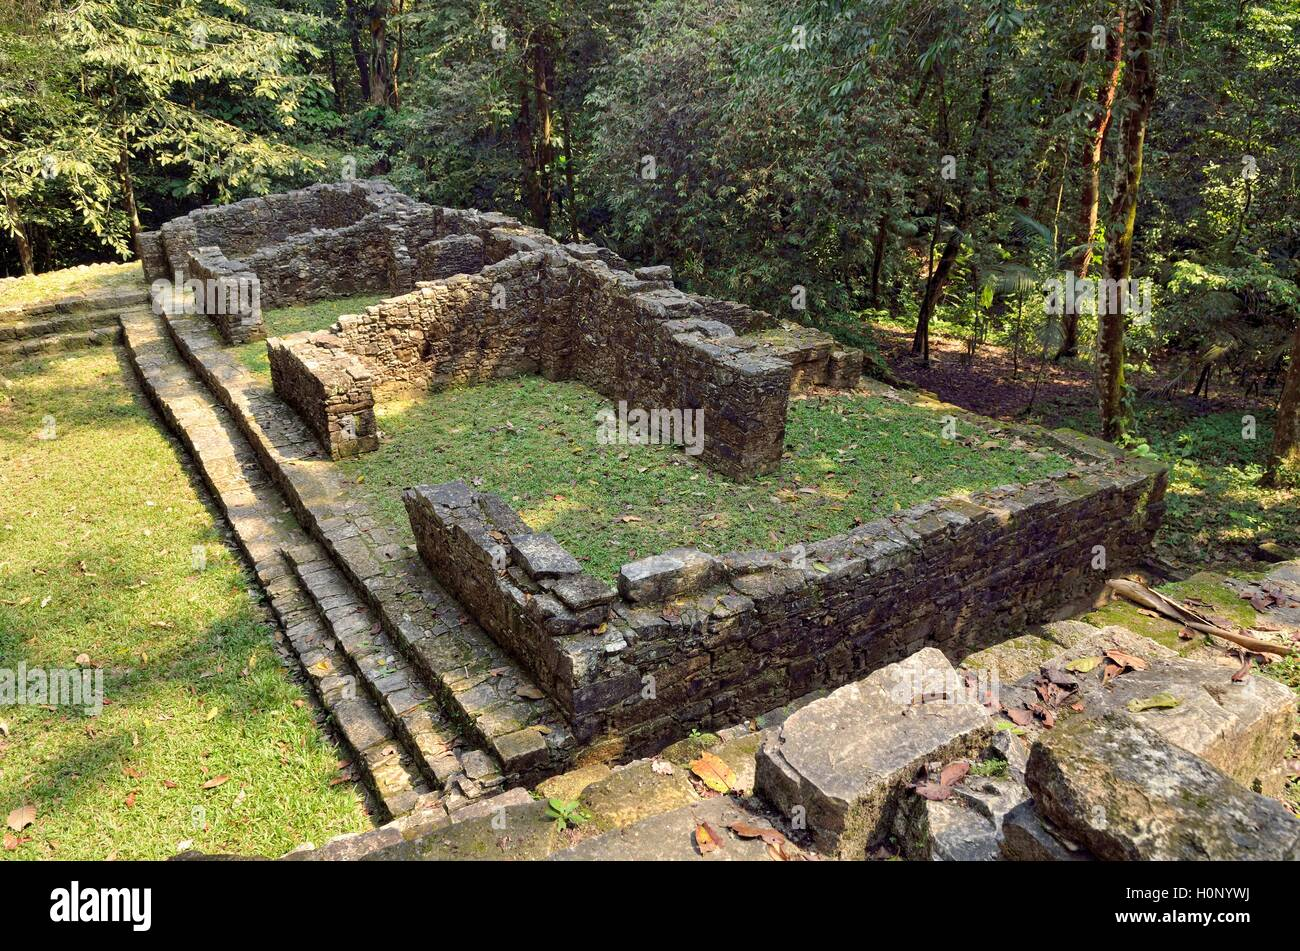 Banjo de la Reina, Bath of the Queen, Mayan ruins of Palenque, Chiapas, Mexico - Stock Image